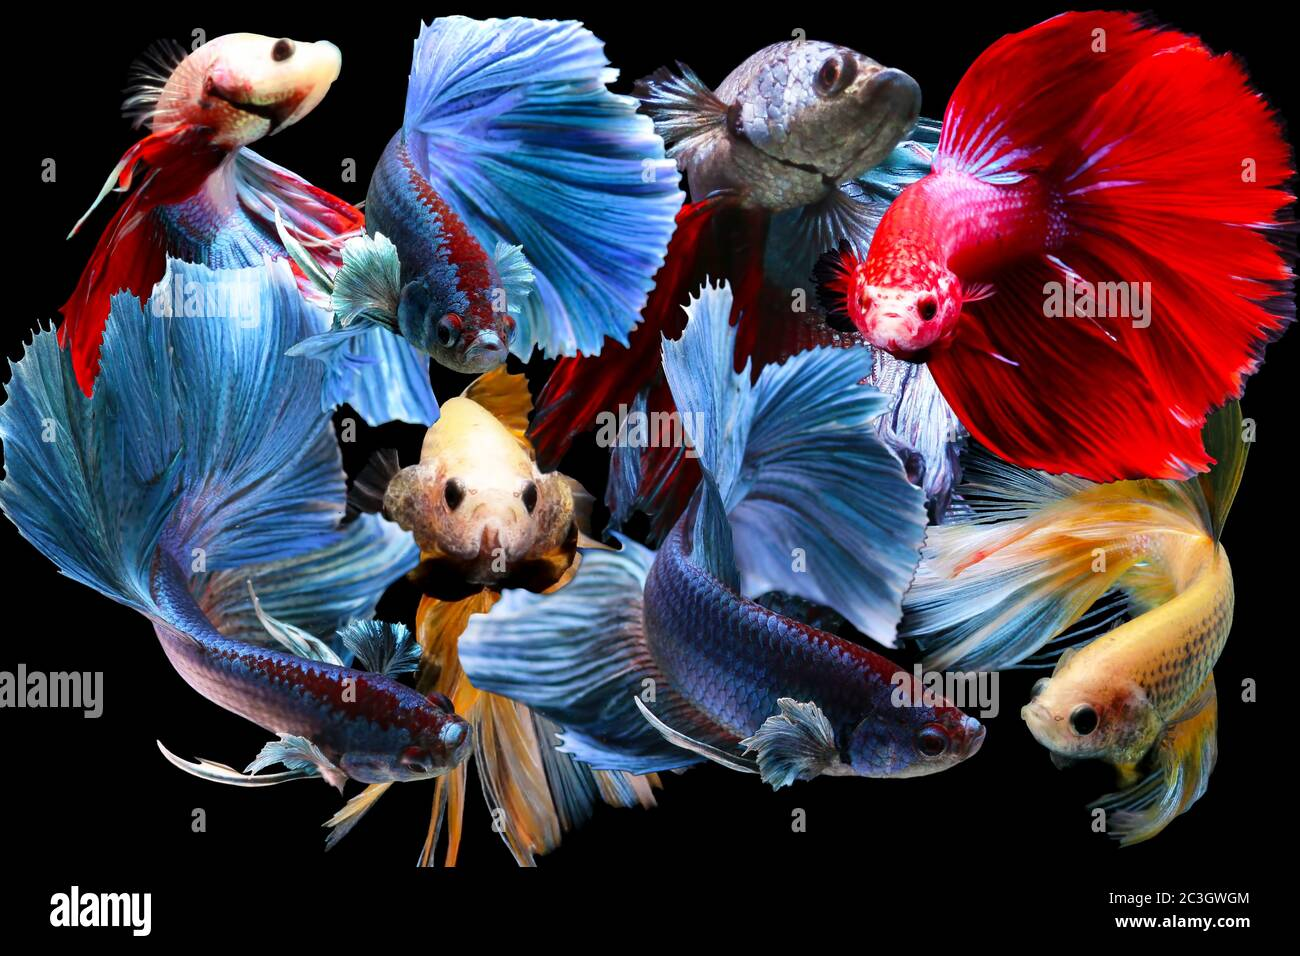 Colourful Betta Fish Siamese Fighting Fish In Movement Isolated On Black Background Stock Photo Alamy